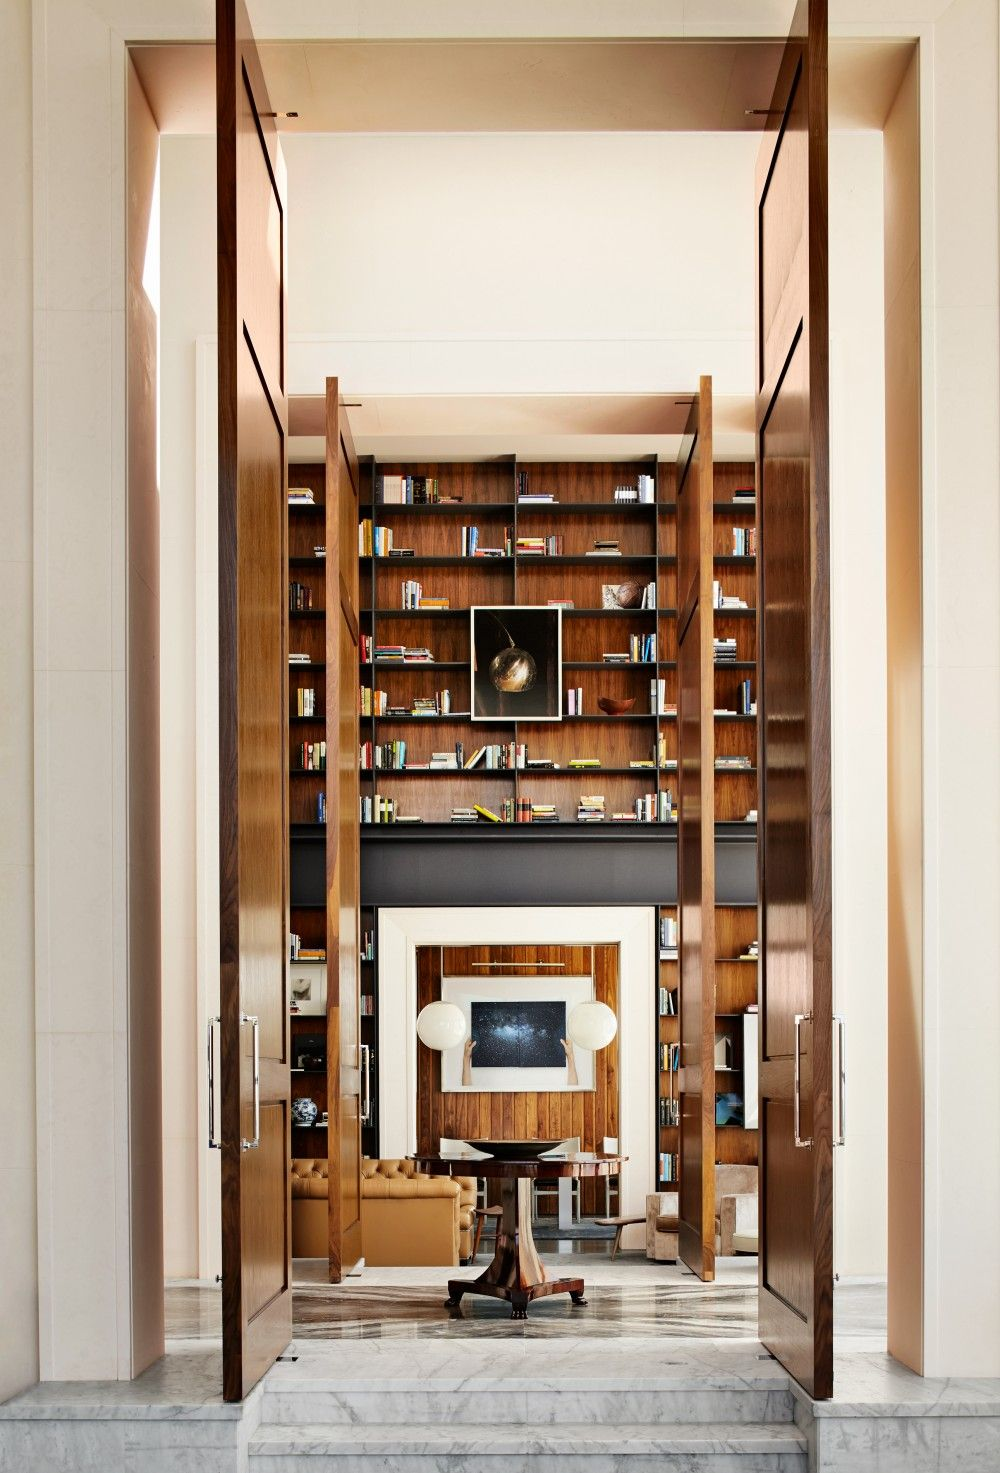 Entrance Hall By Dan Fink And Tim Murphy In Los Angeles Ca With